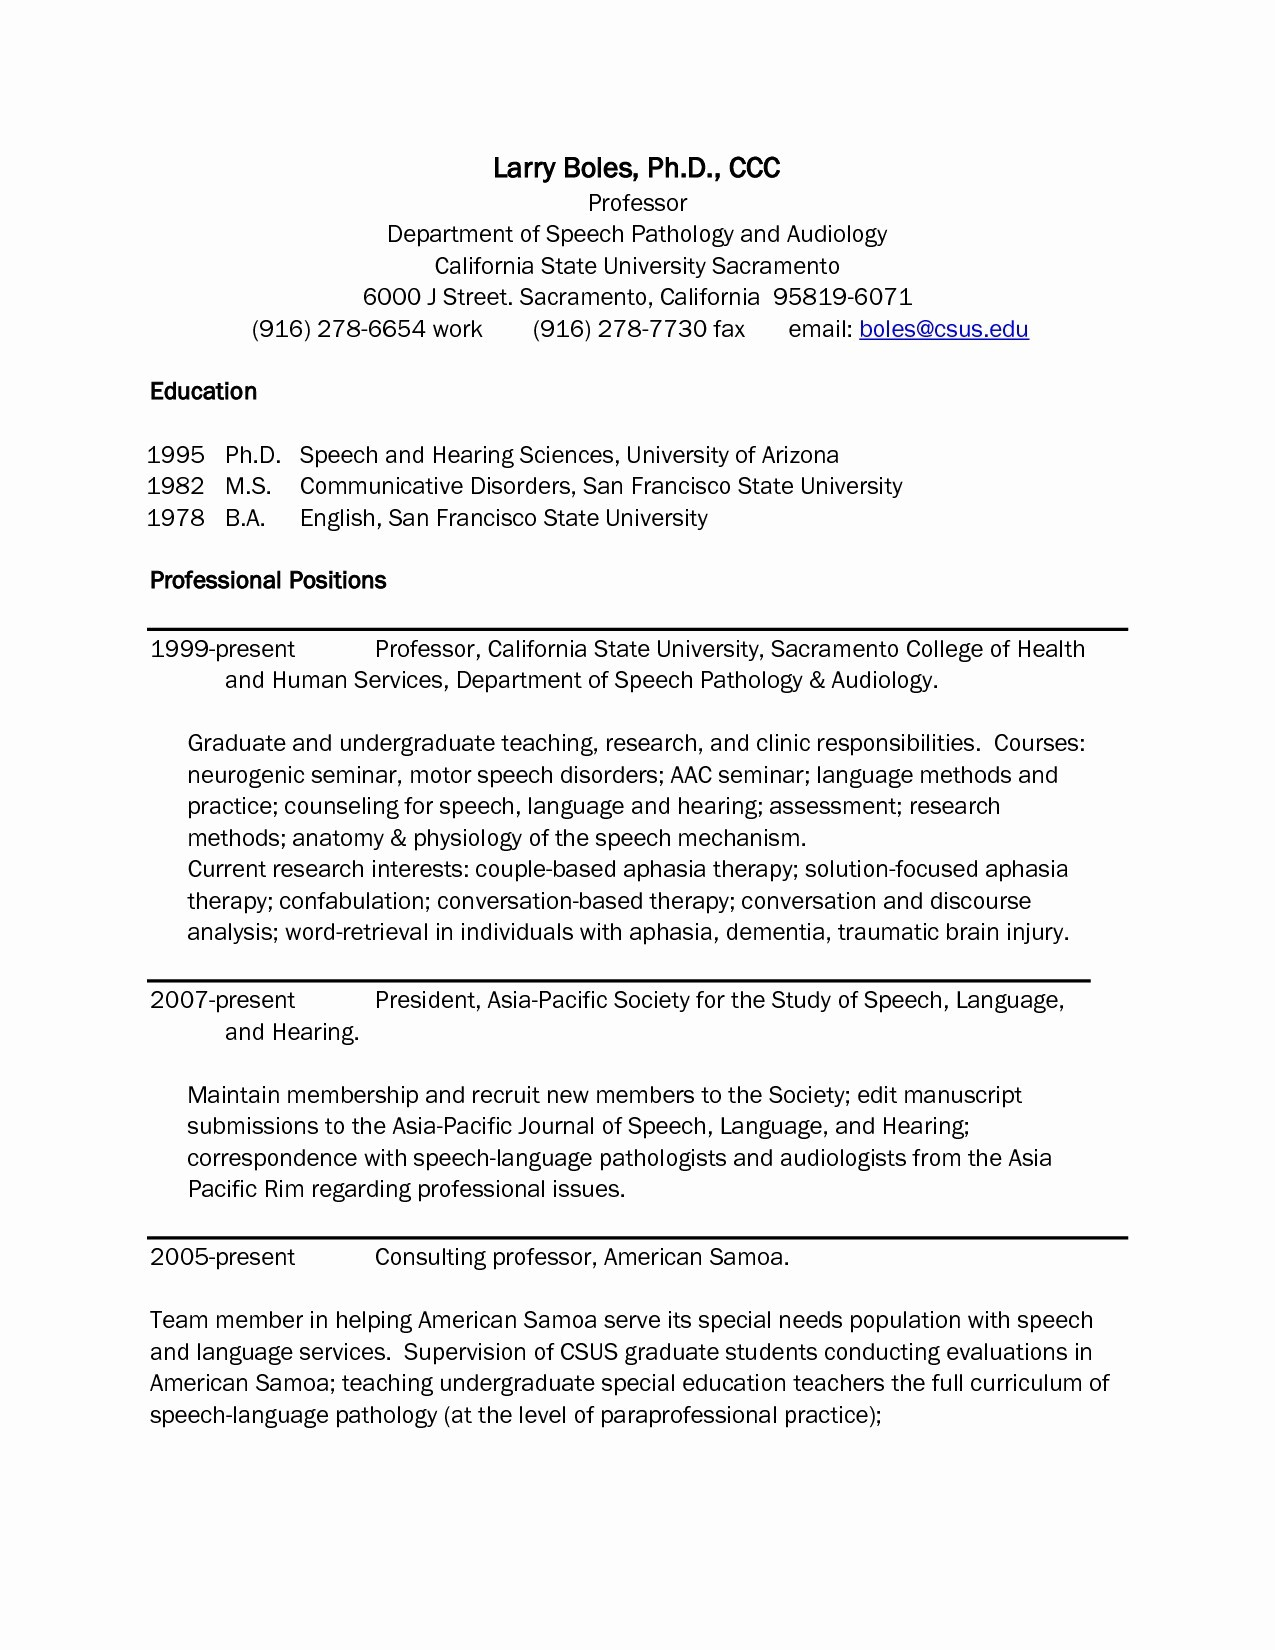 9 accomplishment statements resume examples  resume template